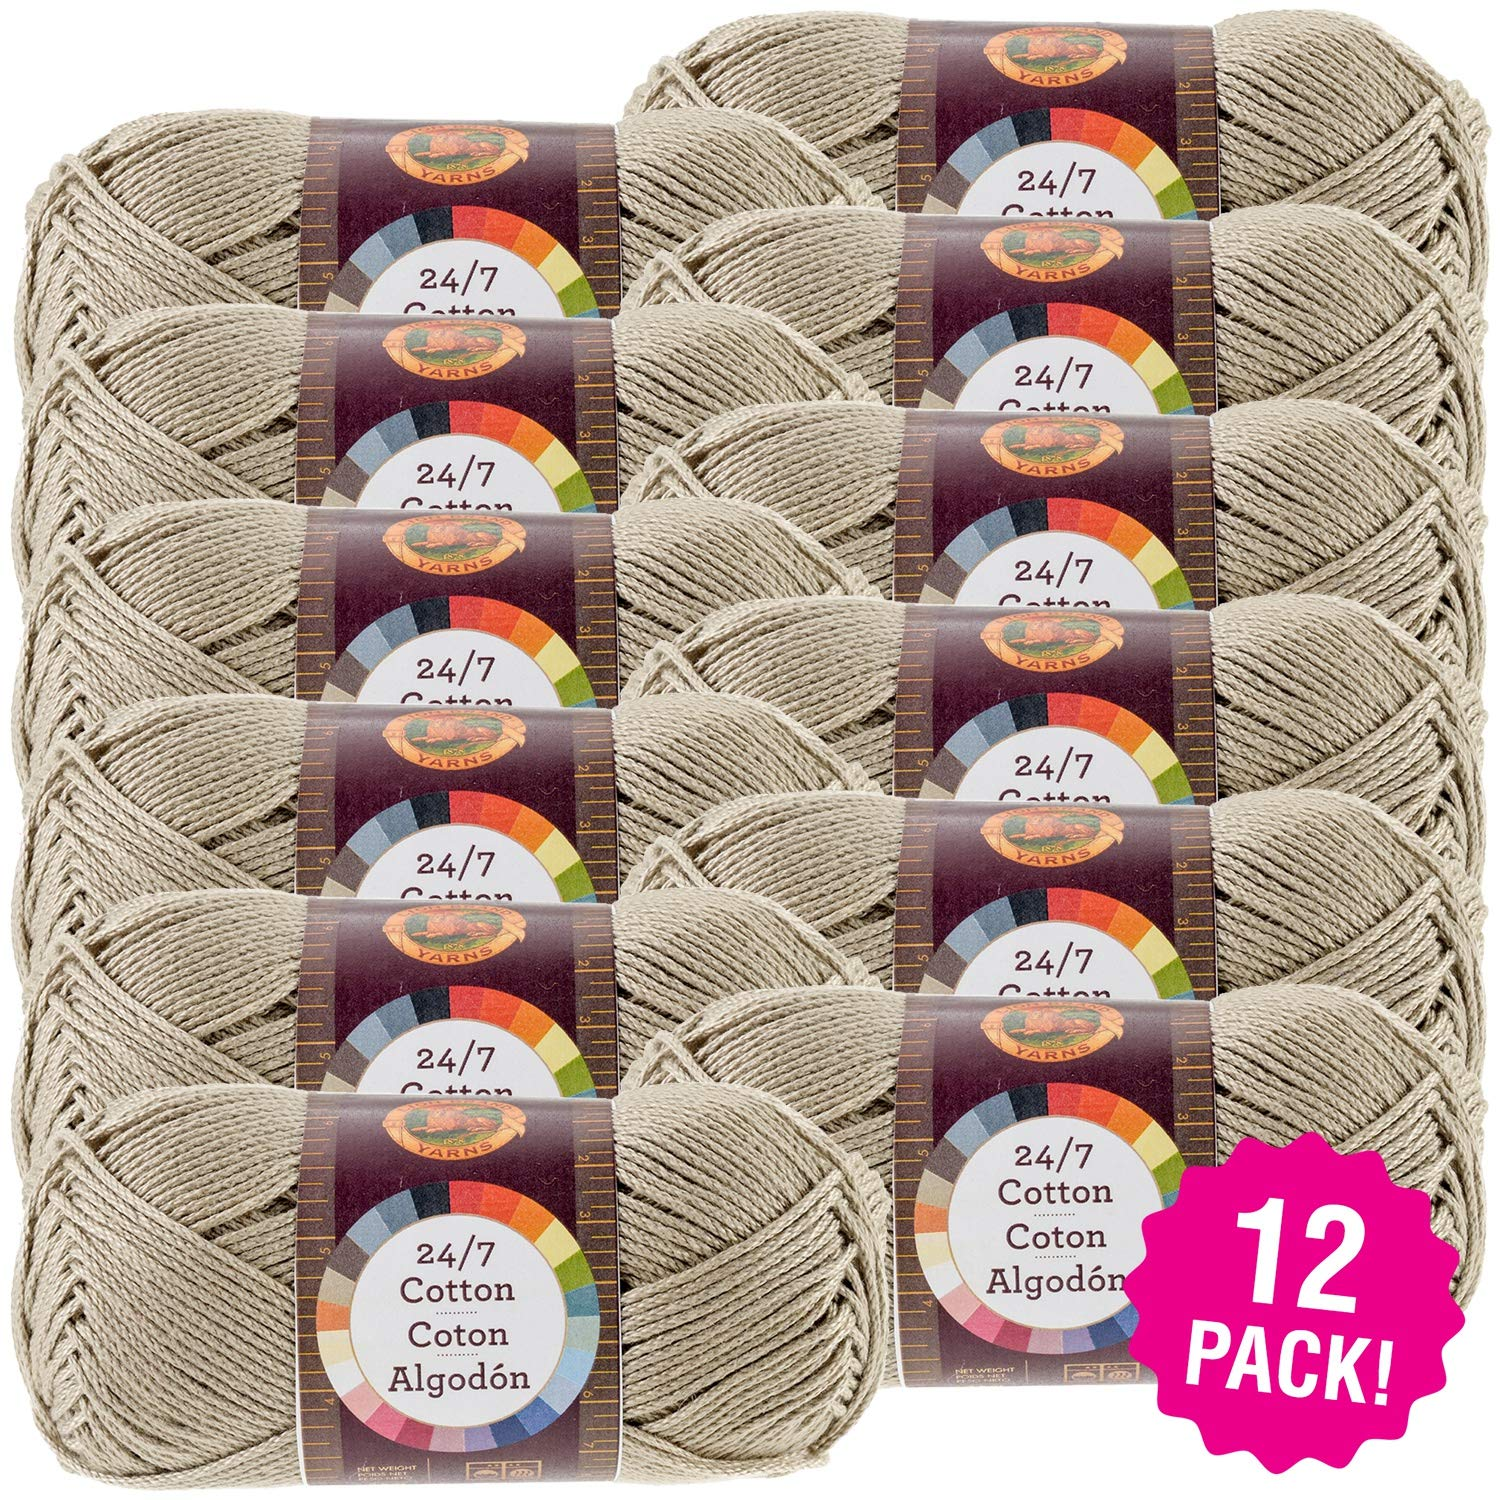 Lion Brand 98678 24/7 Cotton Yarn-12/Pk-Taupe, 12/Pk, Taupe Pack